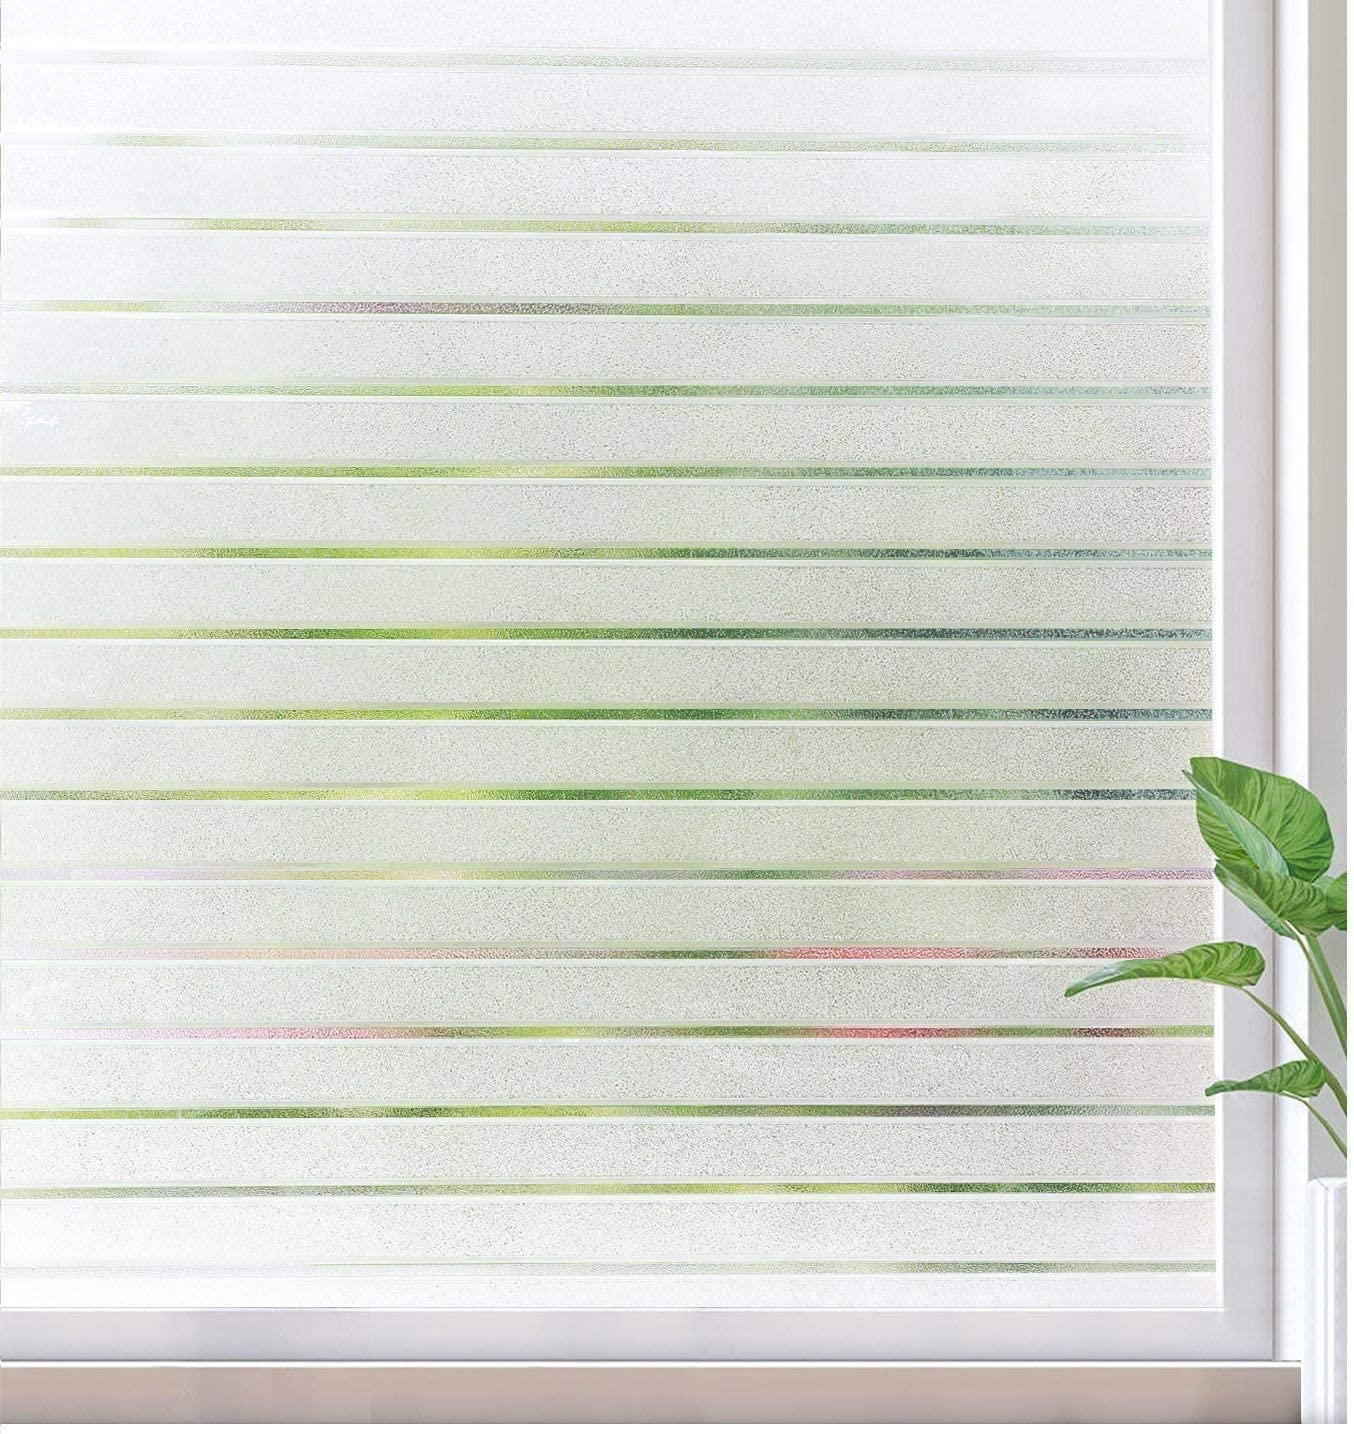 rabbitgoo Frosted Window Film Static Cling Decorative Glass Film UV Protection Window Privacy Film Non Adhesive Window Cling for Home Office Meeting Room, Frosted Stripe Patterns, 17.5 x 157 inches